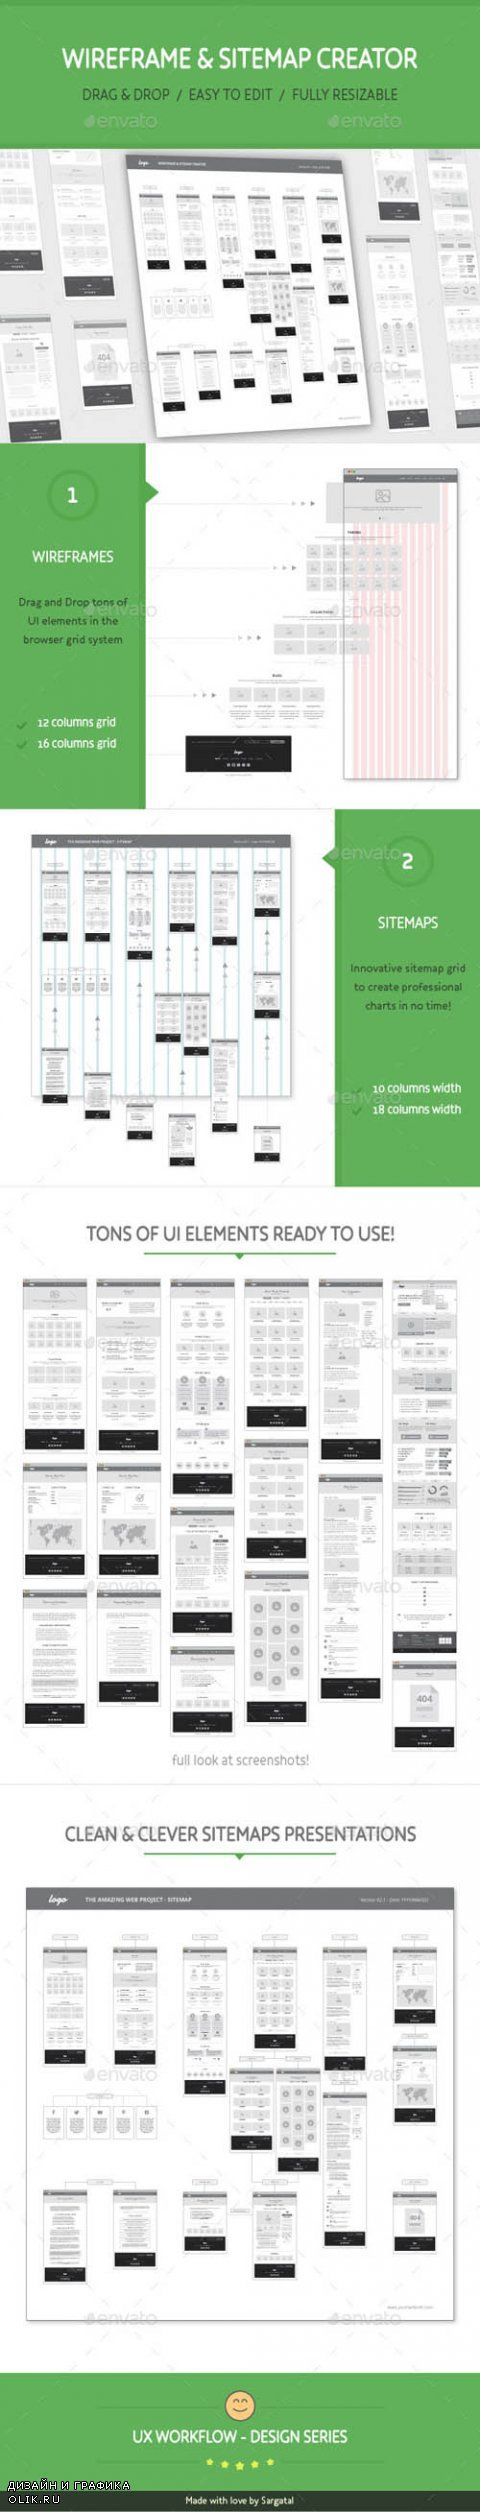 UX Workflow - Wireframe and Sitemap Creator 18406253